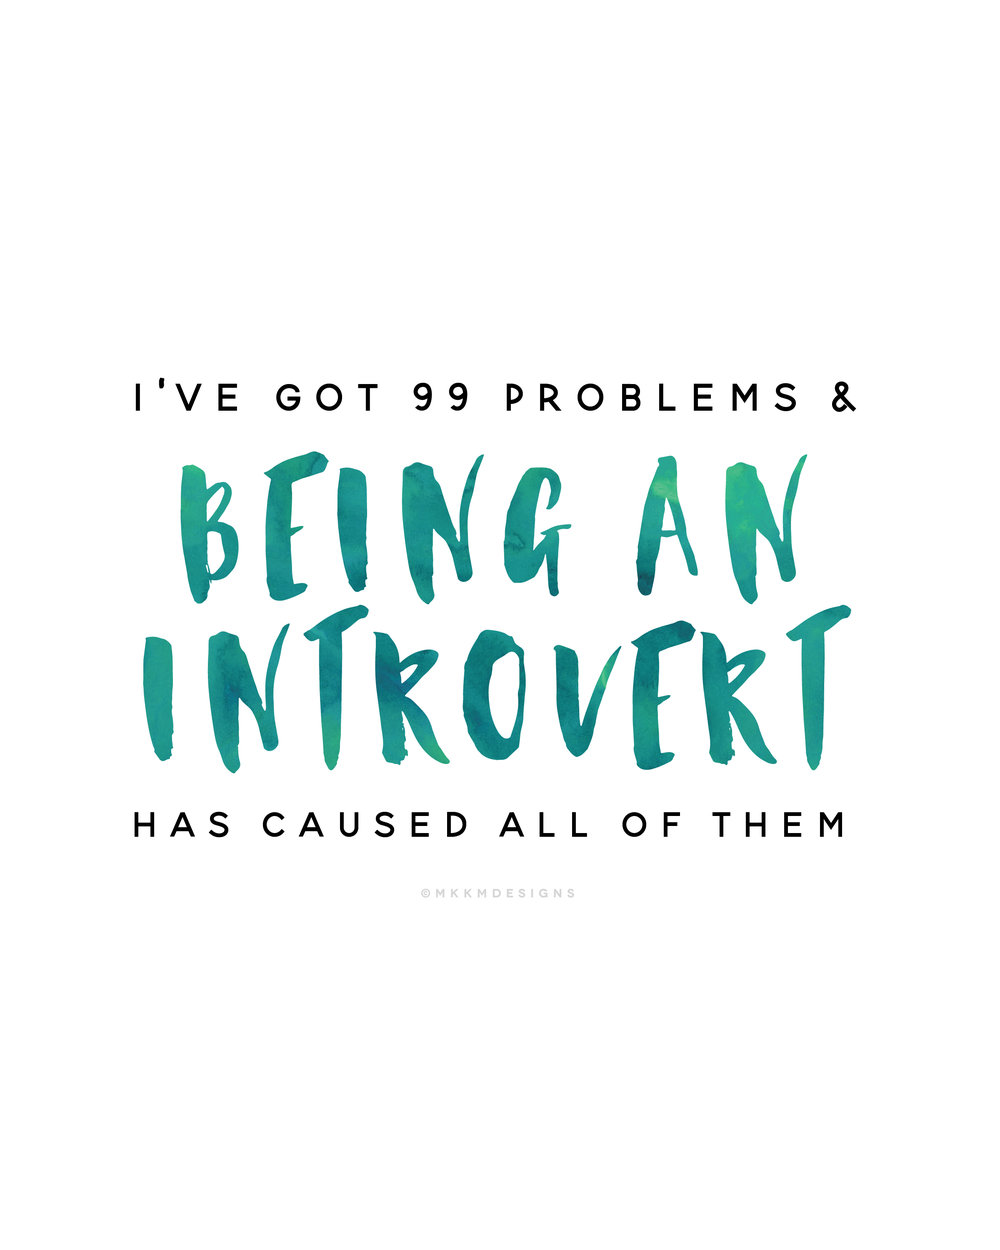 I've got 99 problems and being an introvert has caused all of them ✦ Quote of the day ✦ introvert problems // ✦ mkkmdesigns